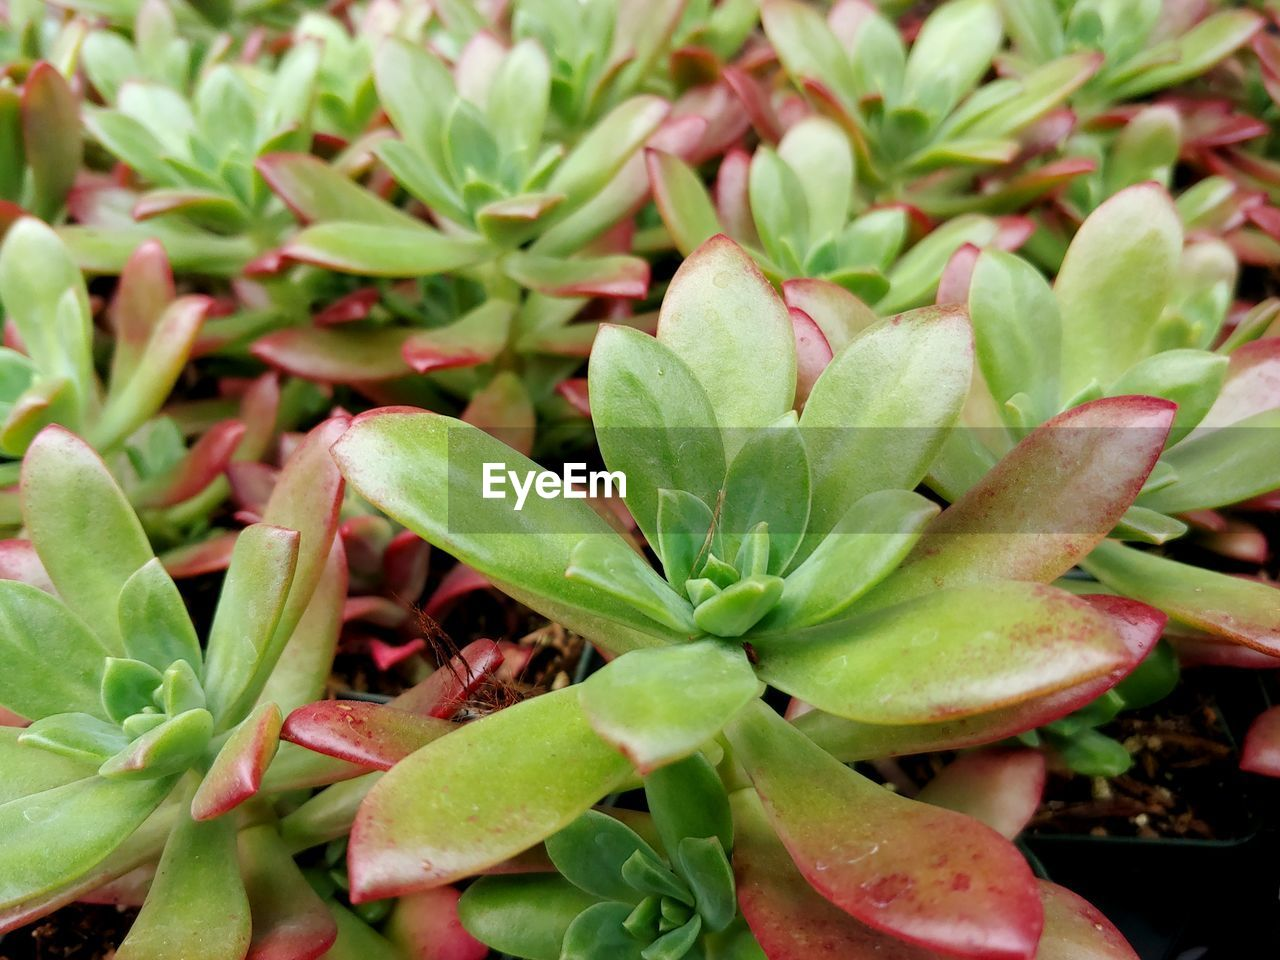 growth, plant part, leaf, green color, plant, beauty in nature, close-up, no people, nature, day, freshness, high angle view, focus on foreground, full frame, selective focus, outdoors, fragility, vulnerability, backgrounds, succulent plant